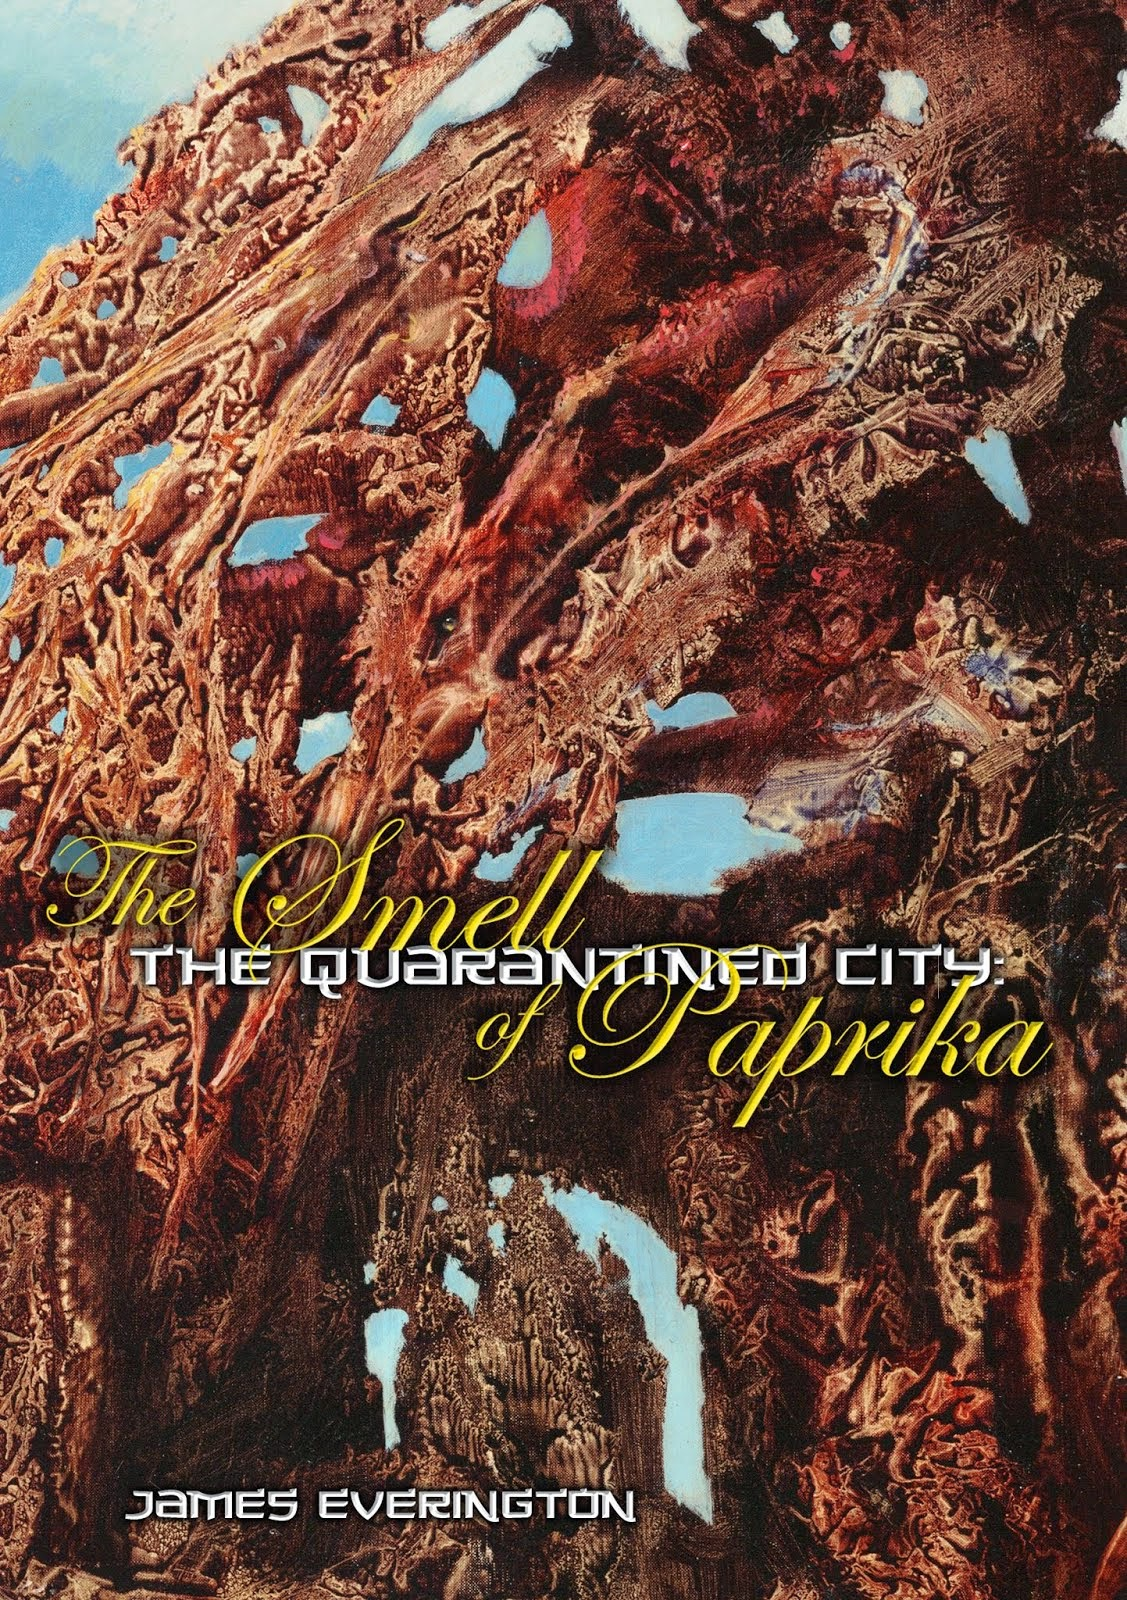 The Quarantined City